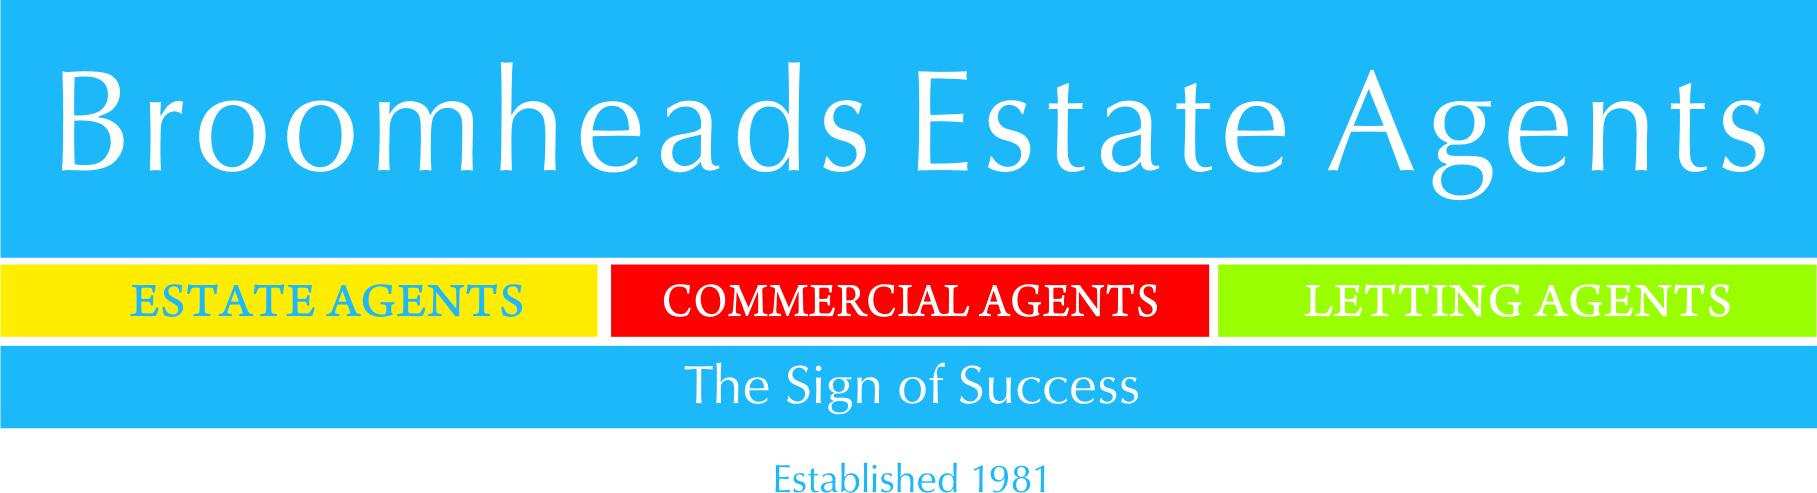 Broomheads Estate Agents